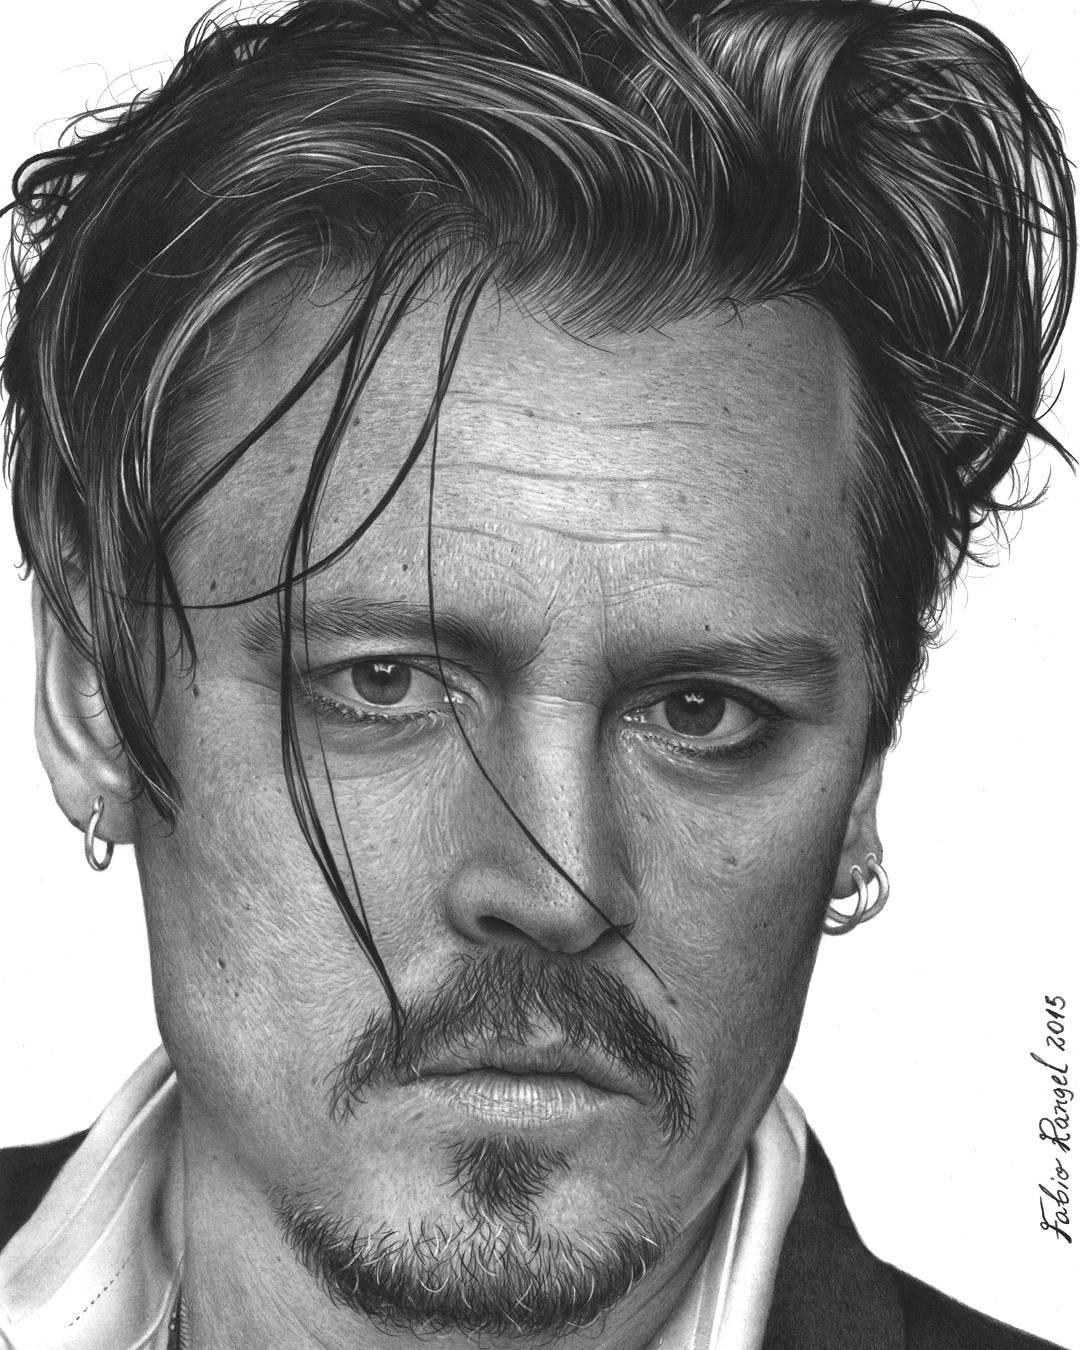 22-Johnny-Deep-Fabio-Rangel-Drawings-of-Protagonists-from-TV-and-Movies-www-designstack-co